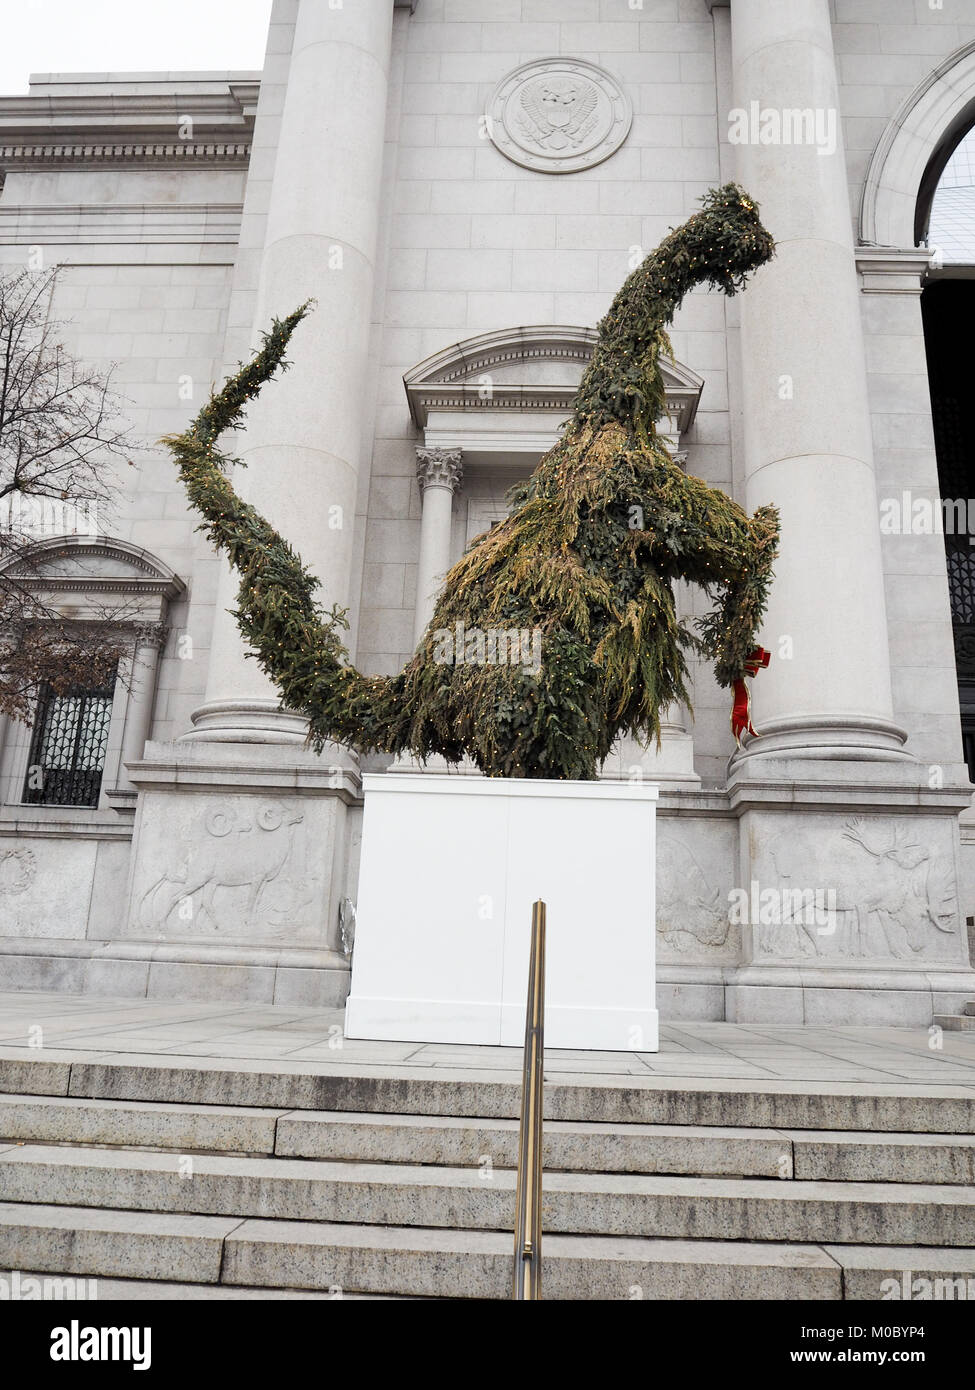 Christmas Tree Dinosaur outside The Natural History Museum, New York, USA. - Stock Image